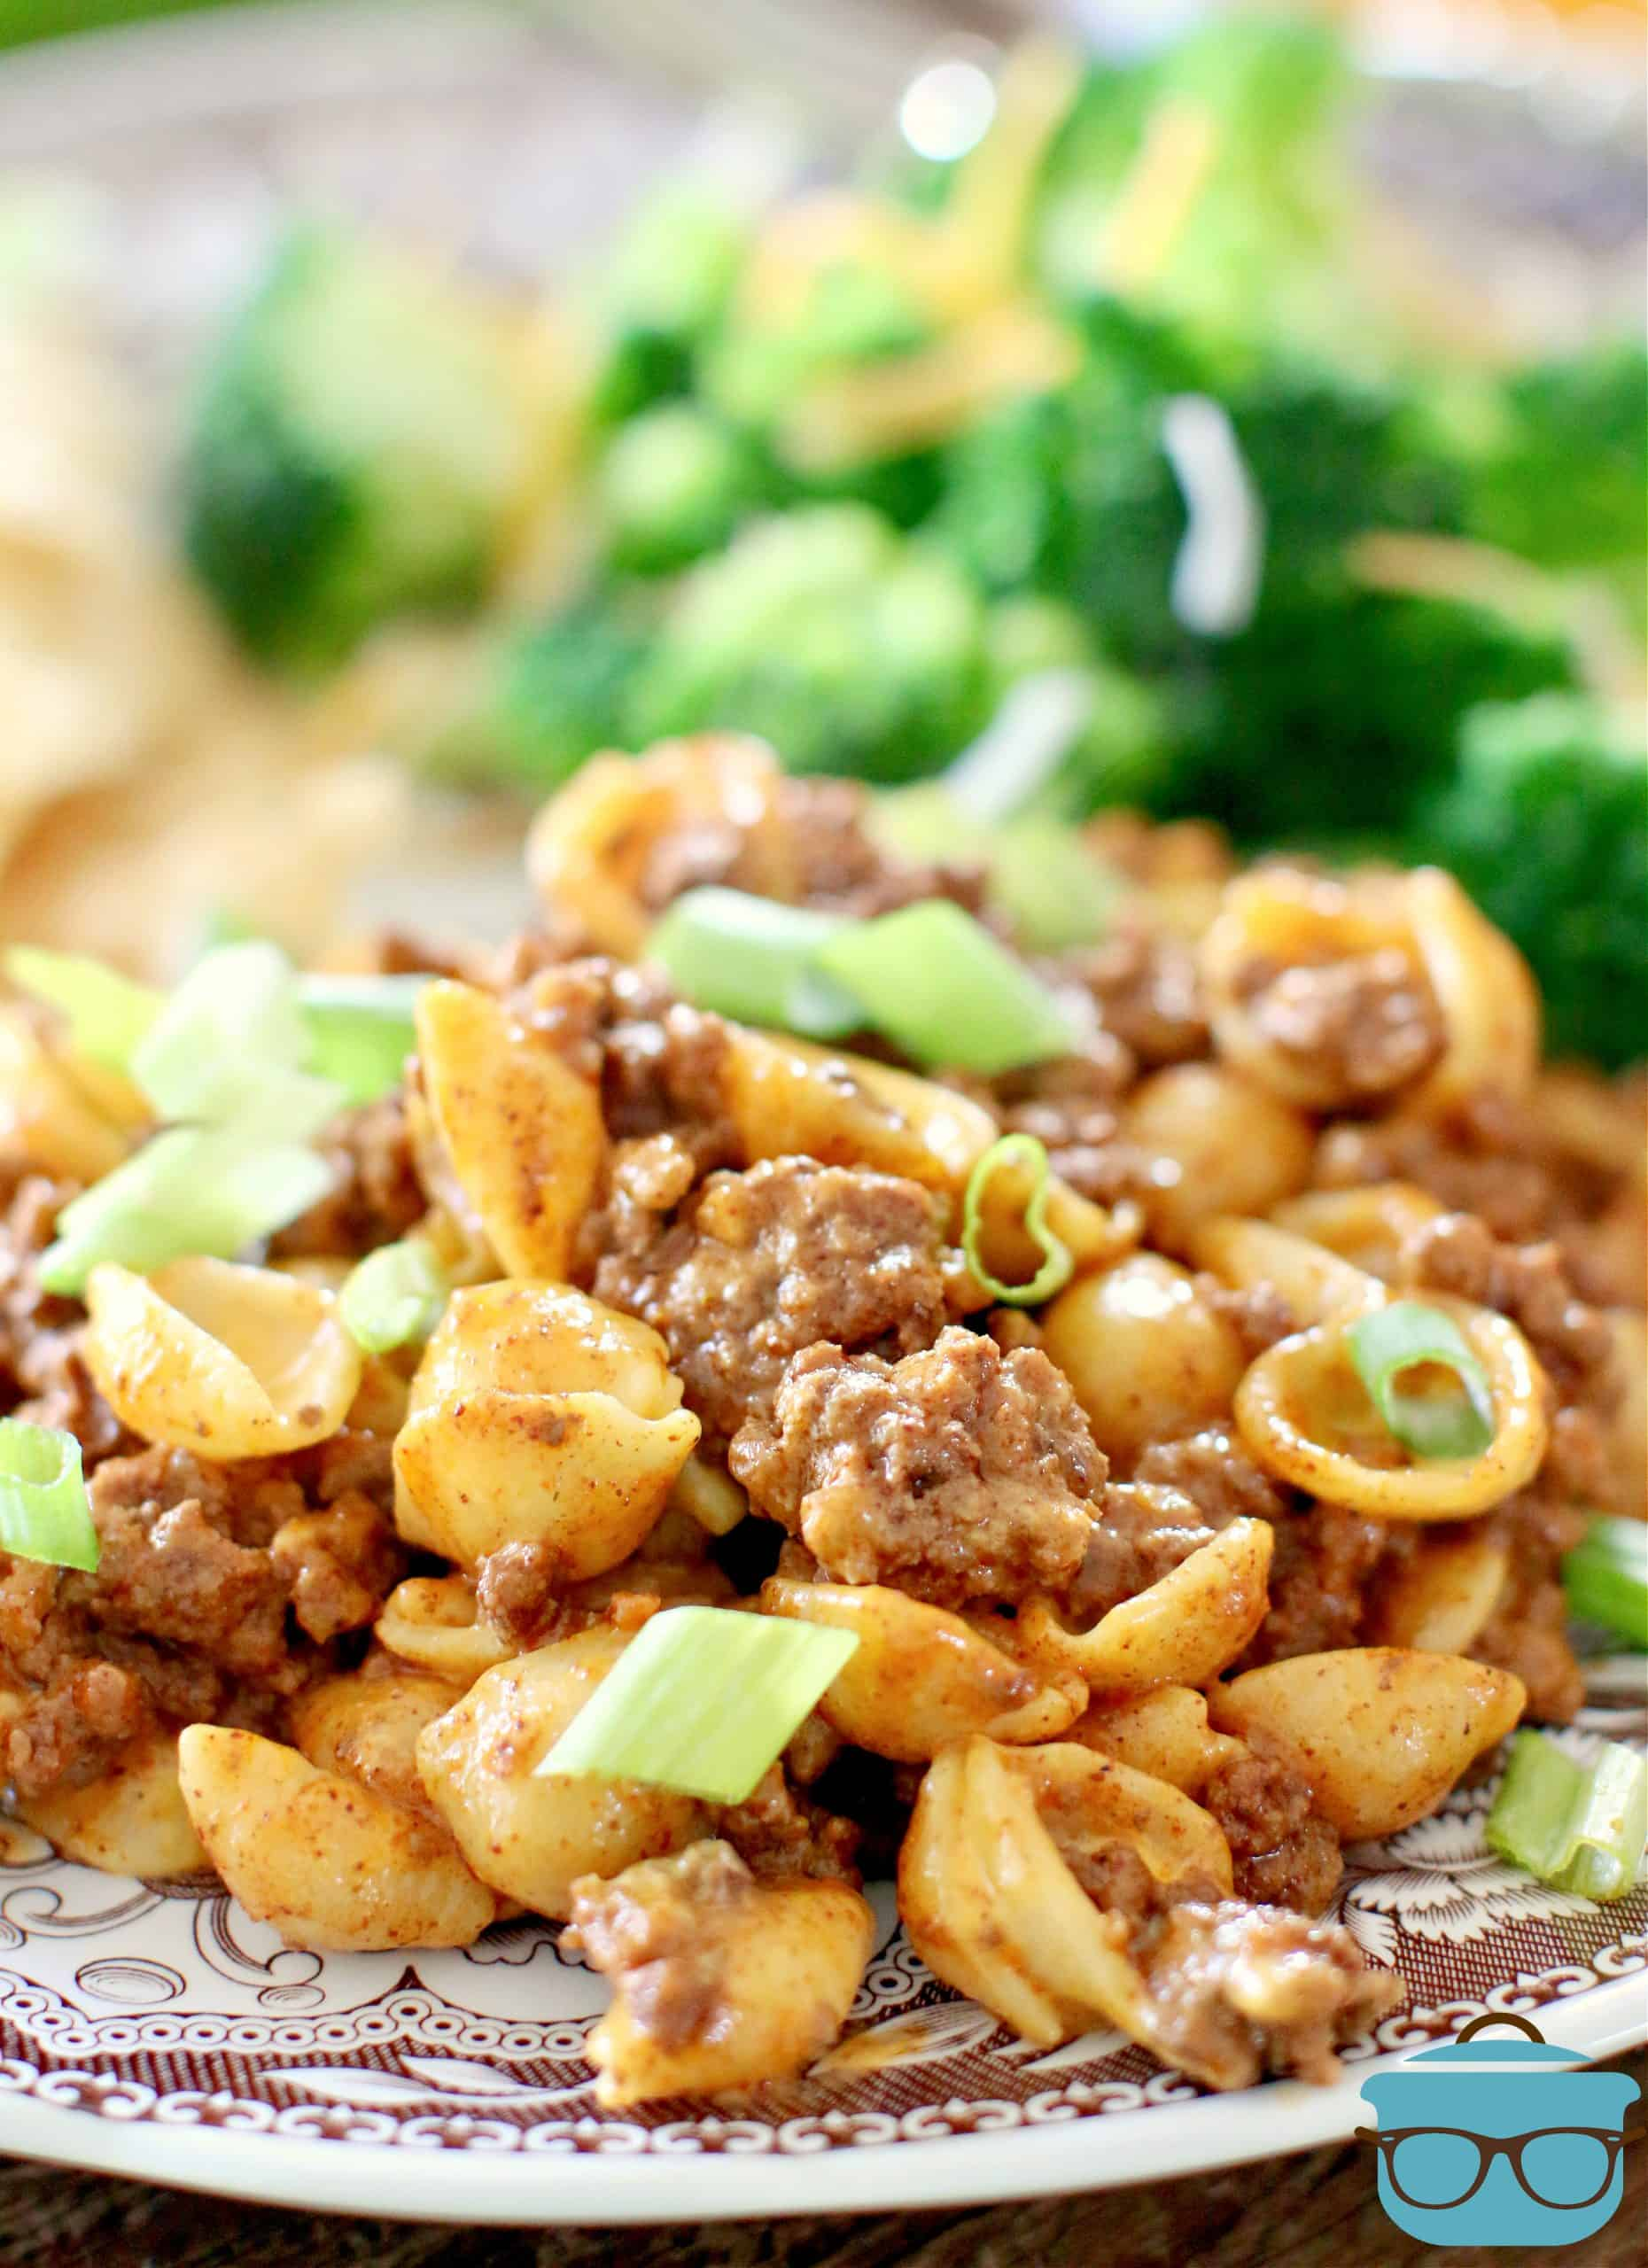 Easy Taco Macaroni and Cheese, serving shown on a plate, with a string of steamed broccoli.